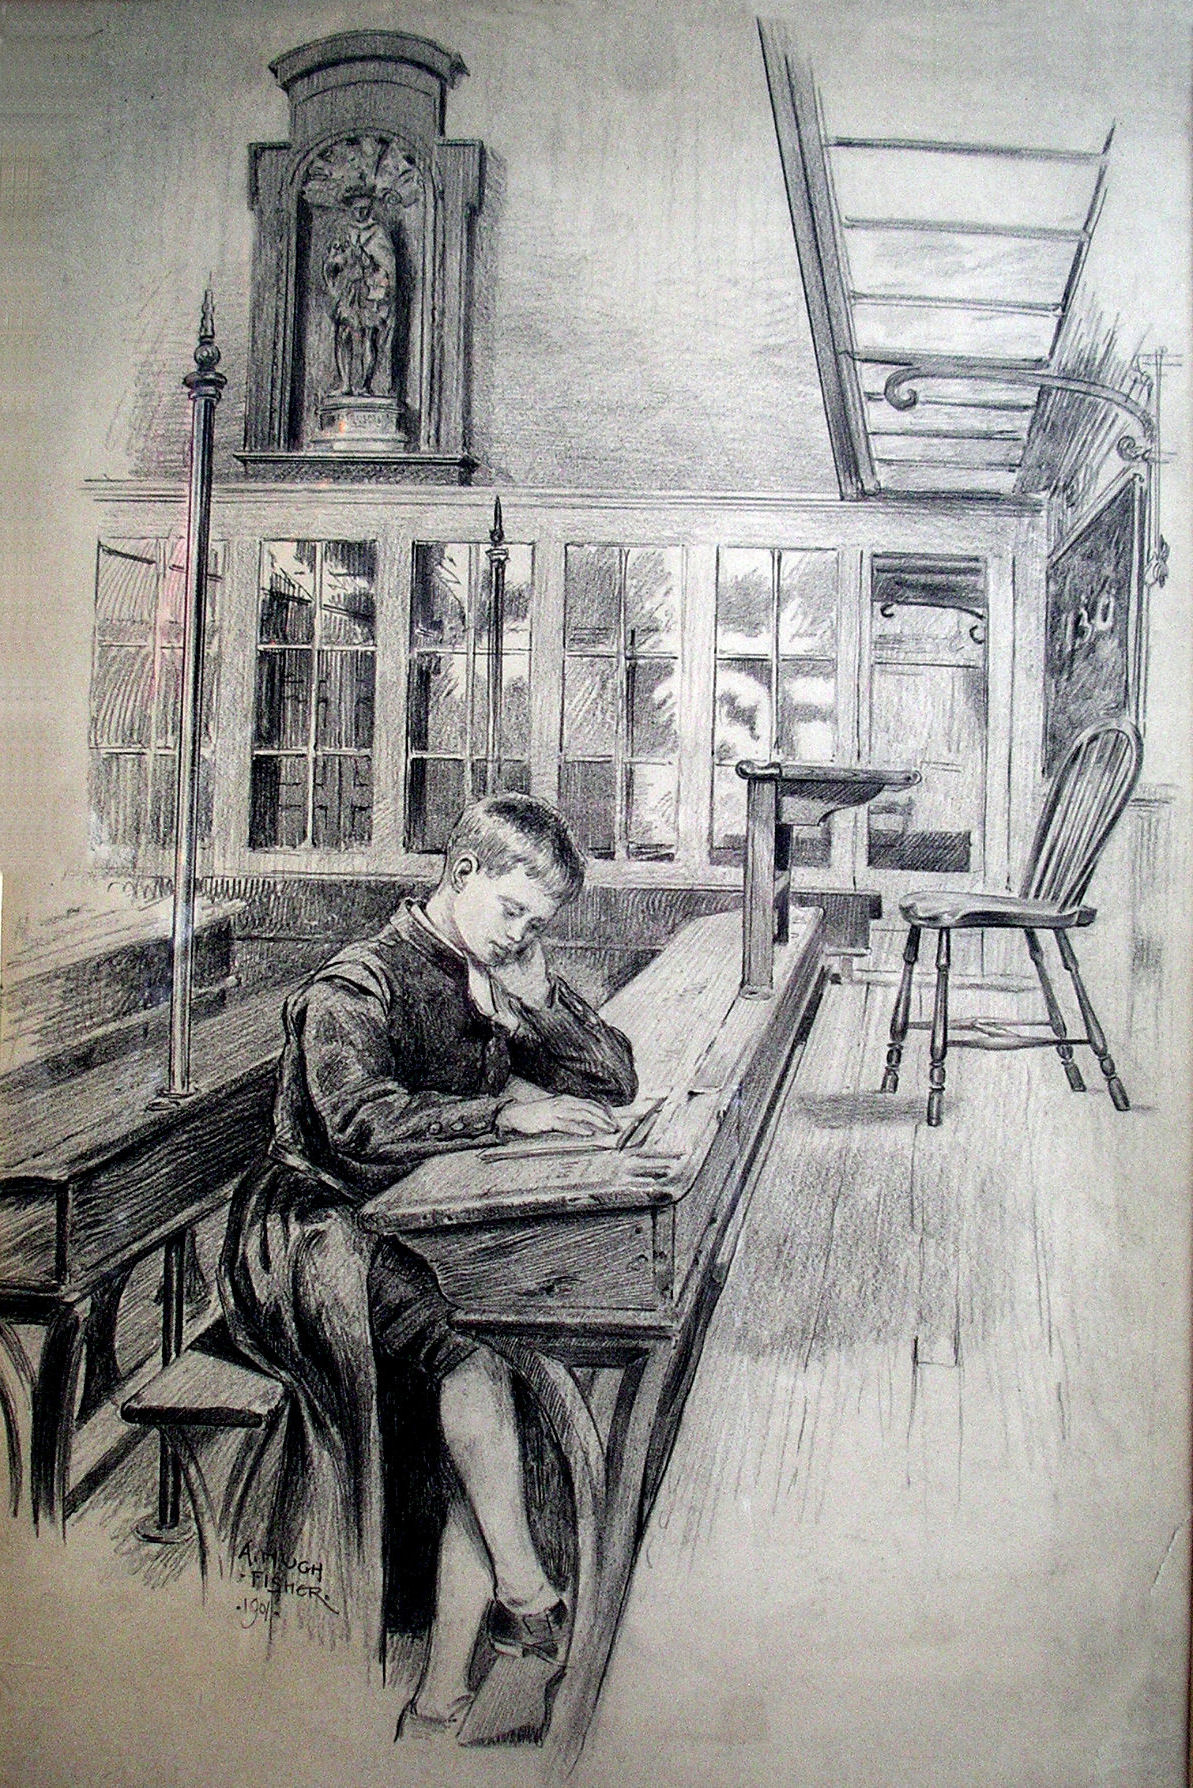 Boy reading in a classroom